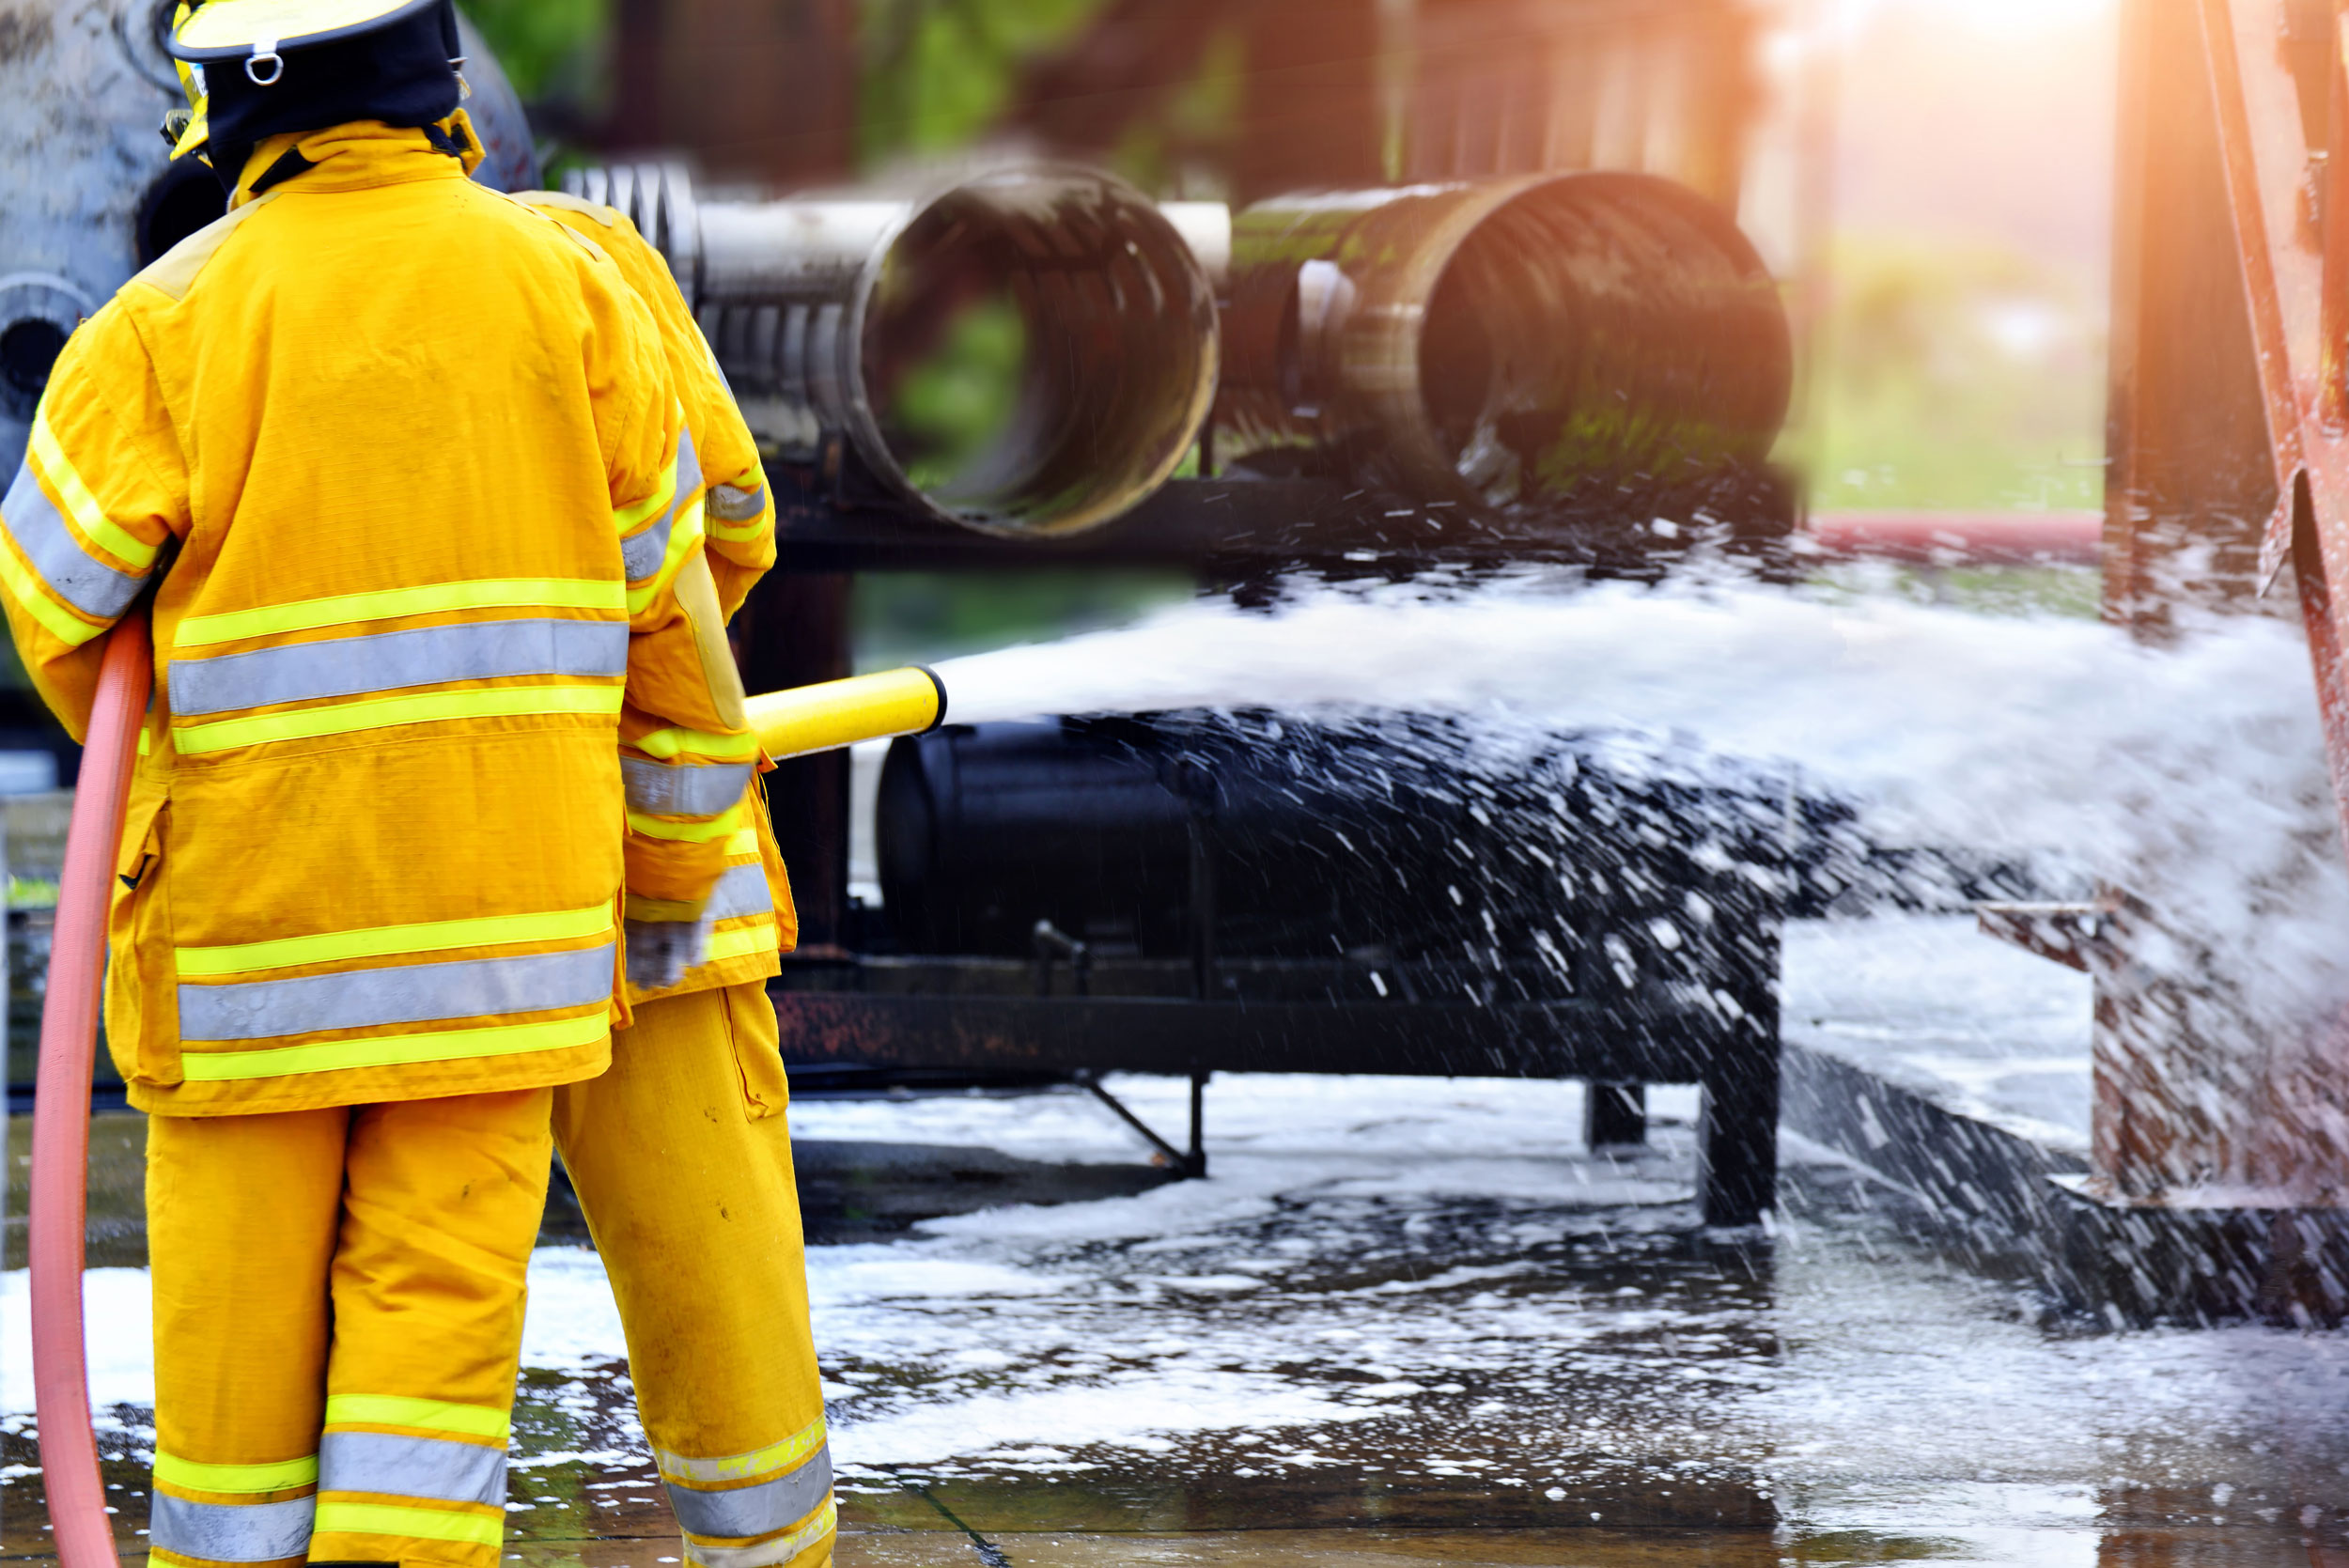 Firefighting foam concentrates Services